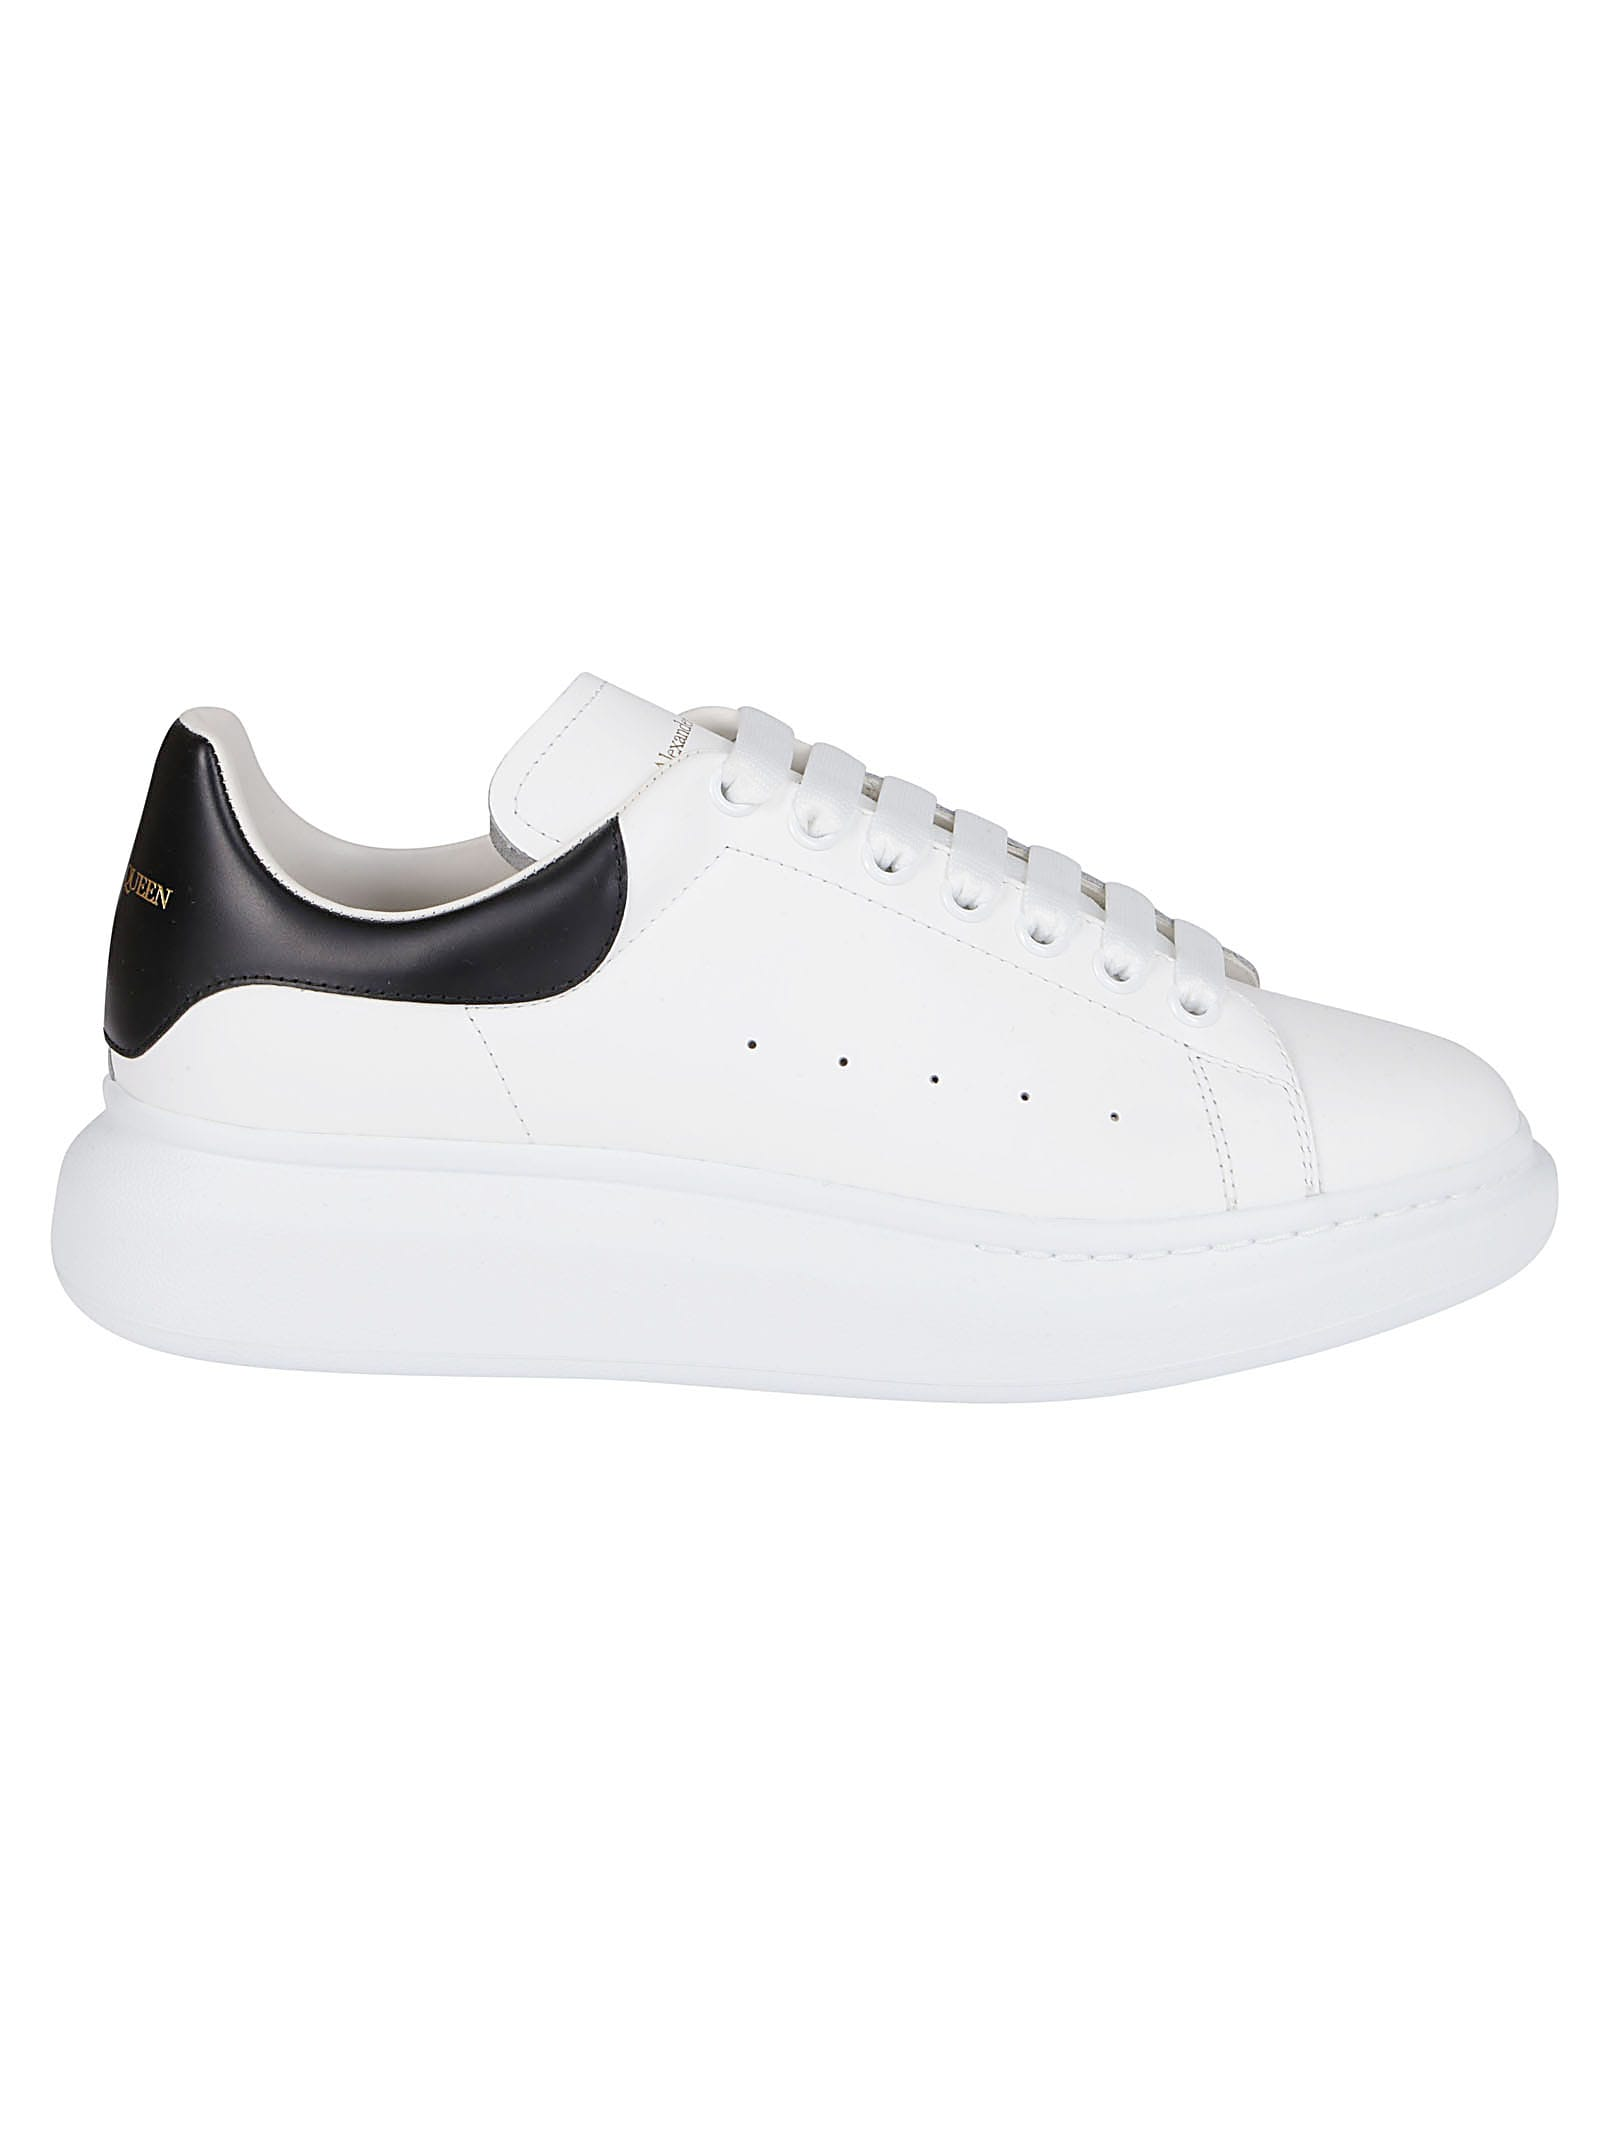 Alexander Mcqueen WHITE AND BLACK LEATHER OVERSIZED SNEAKERS